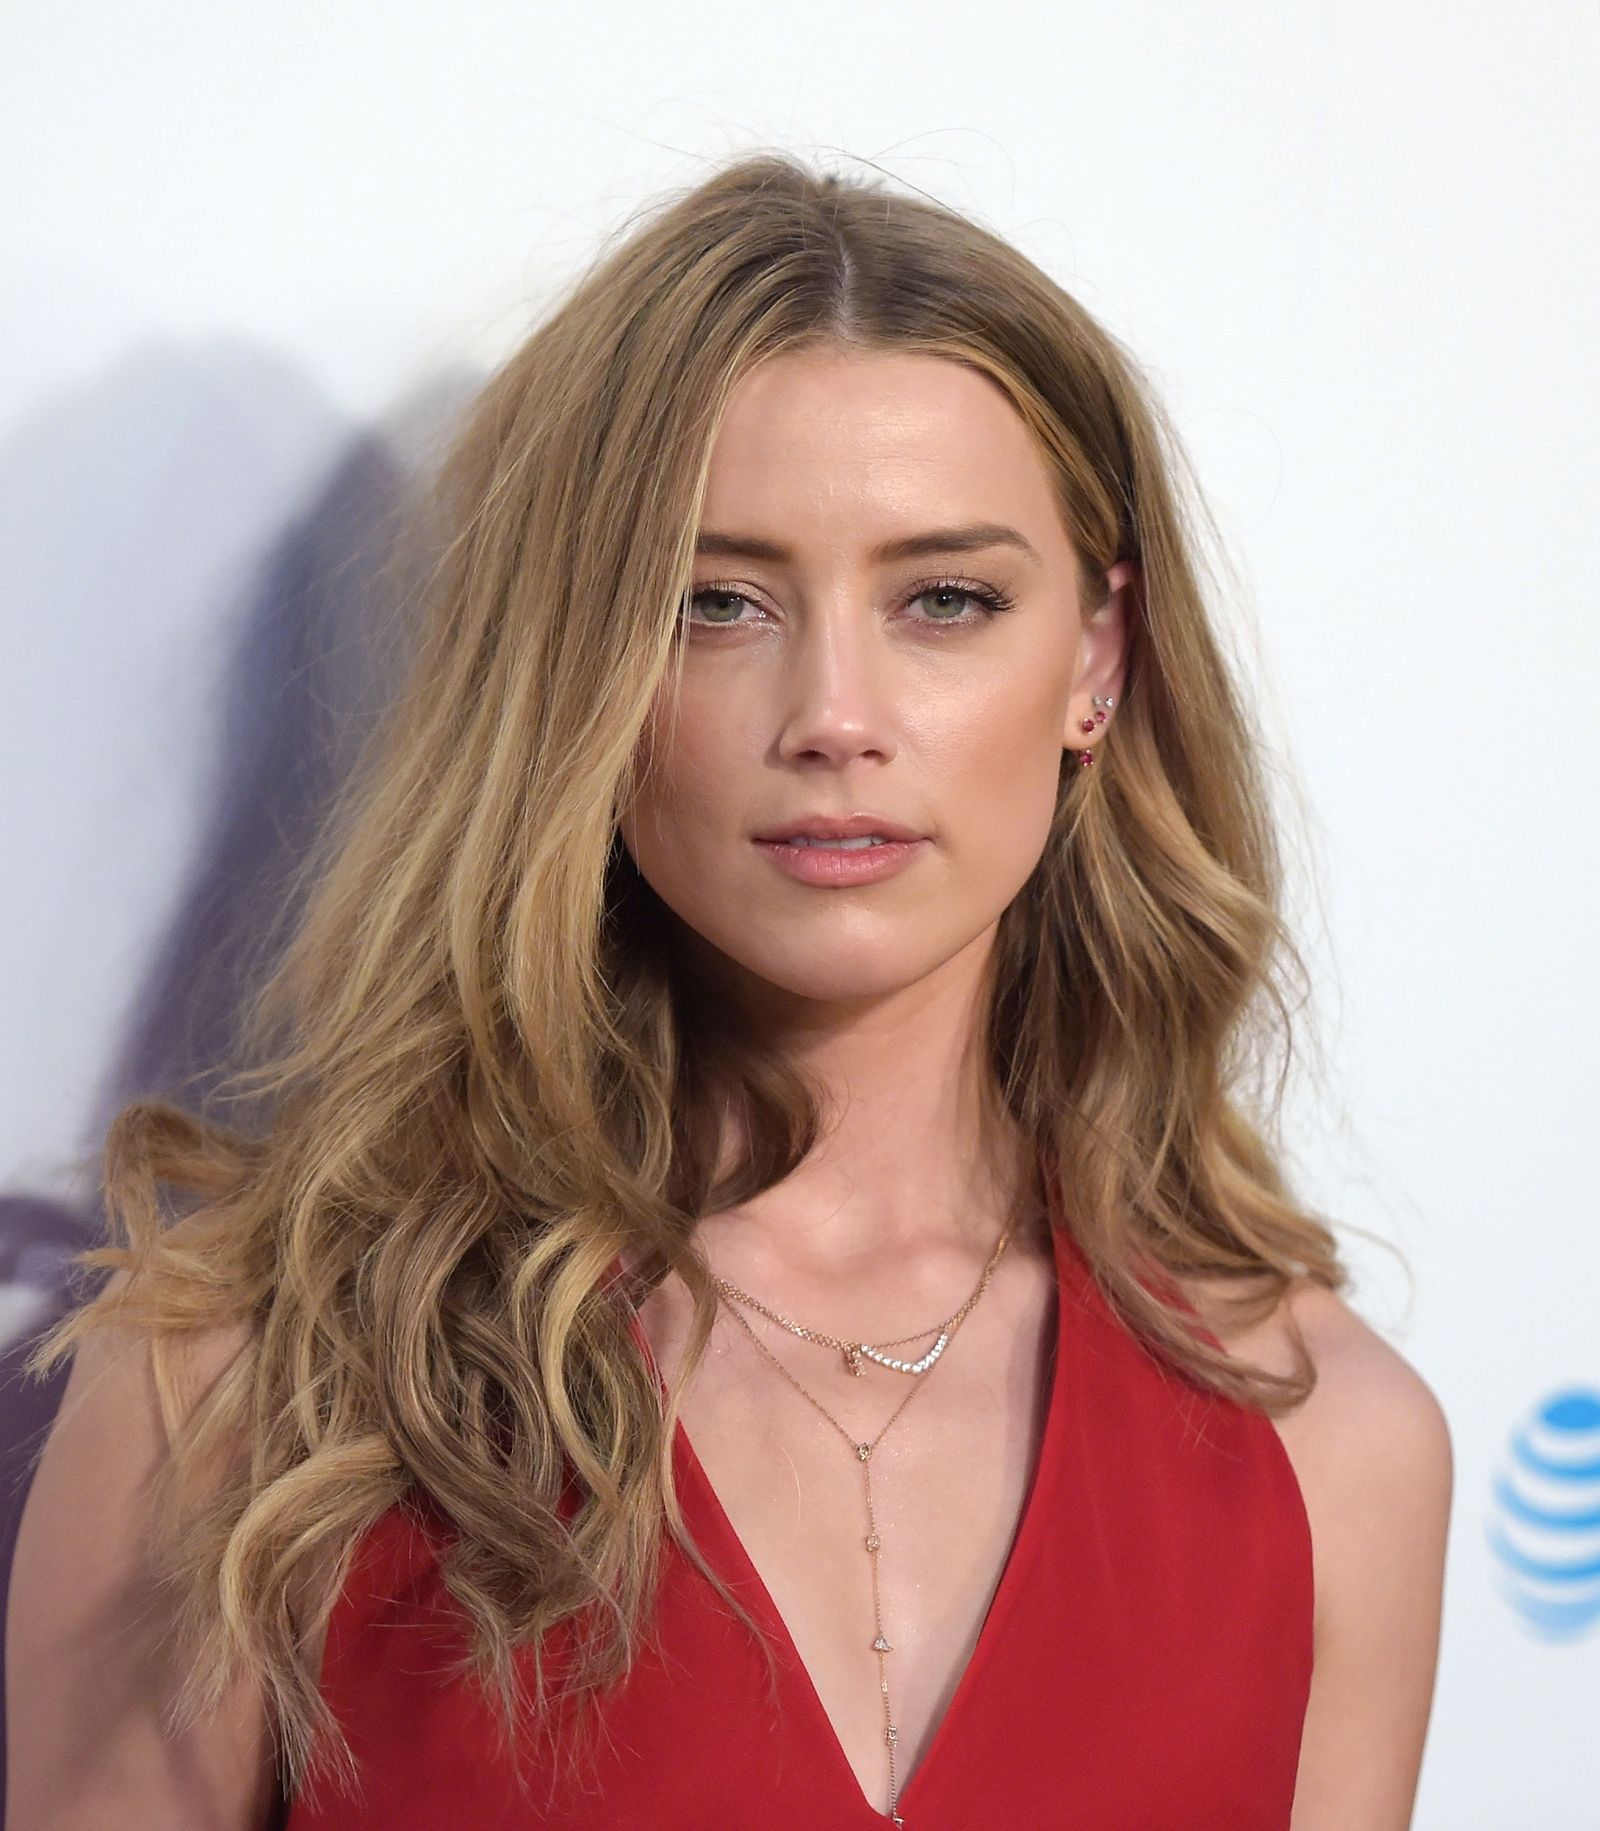 Amber Heard divorce